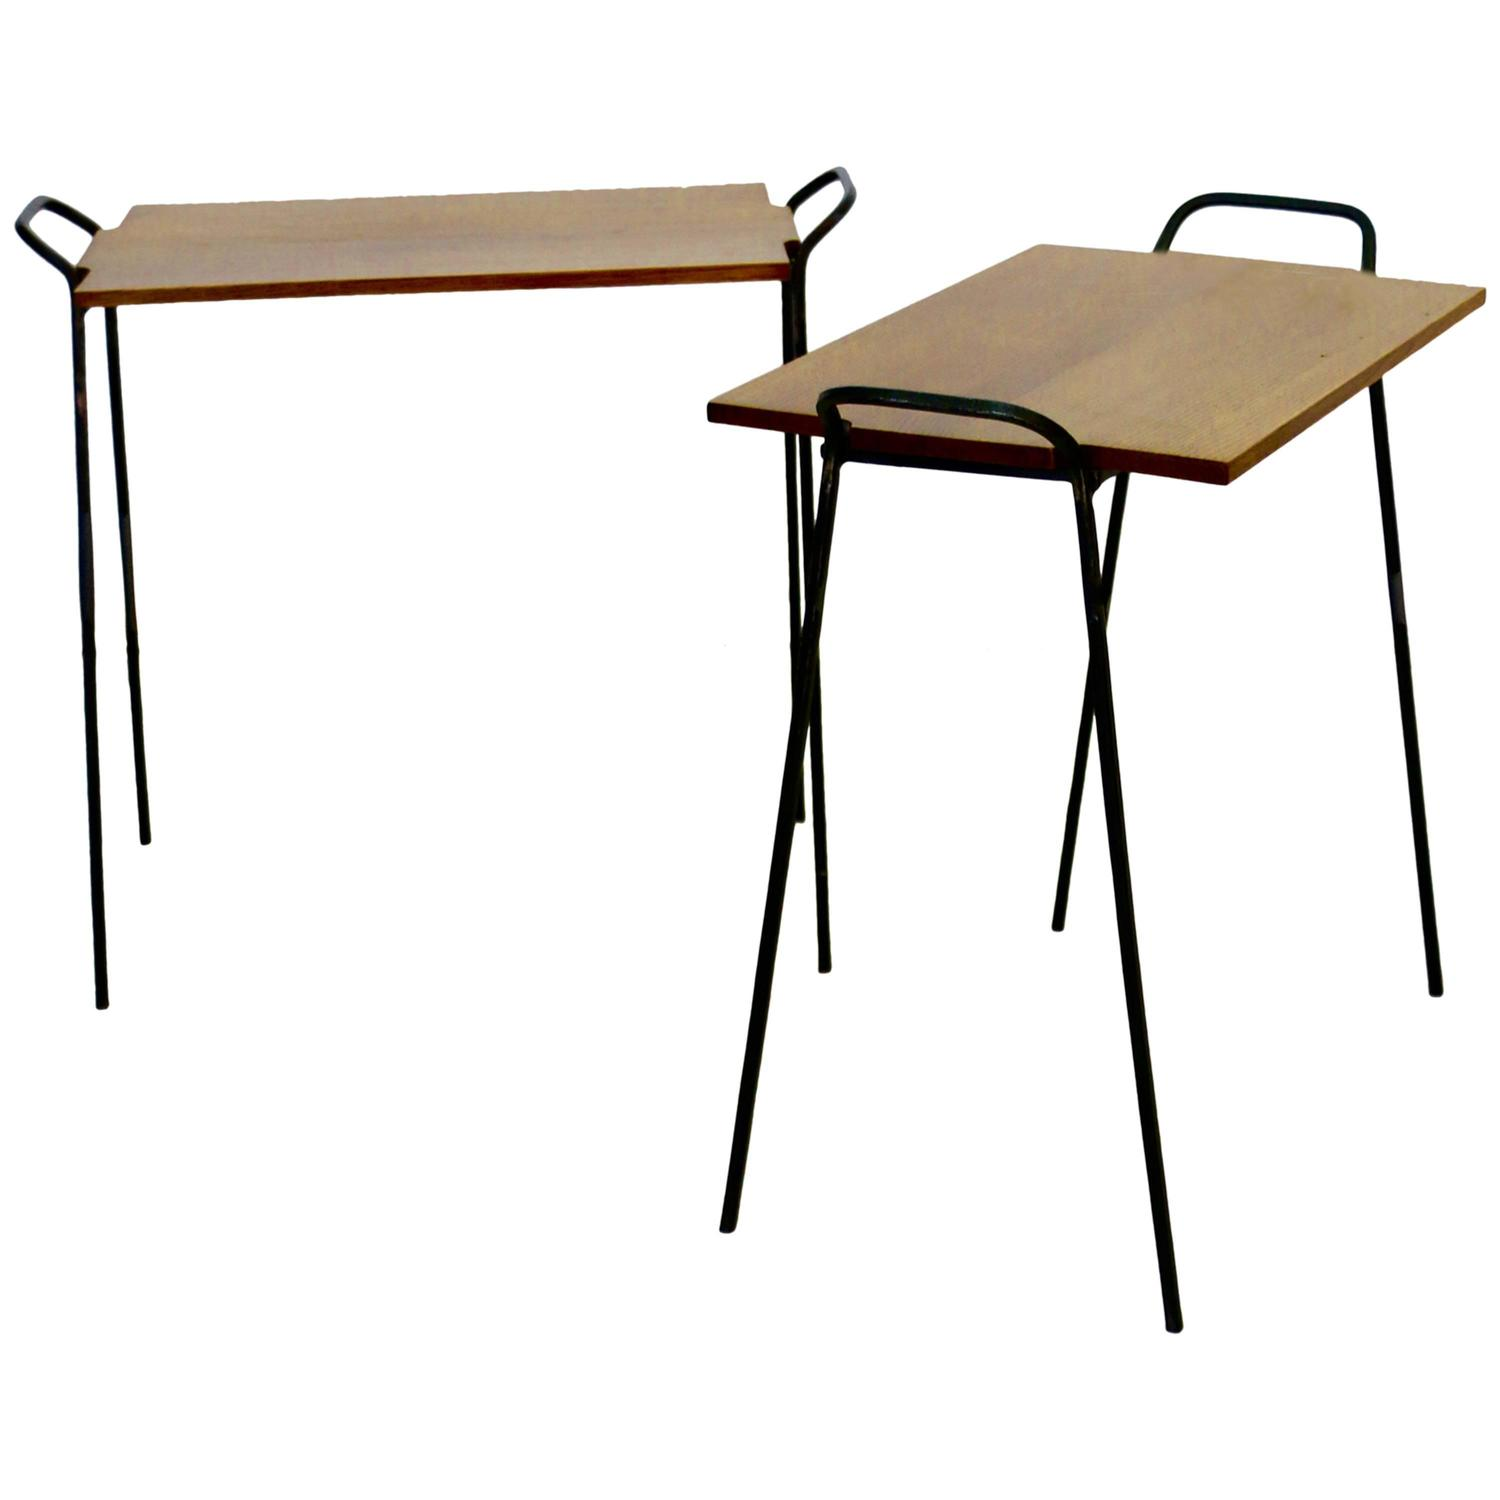 Pair of 1950s side tables in wrought iron and wood at 1stdibs for Wrought iron side table